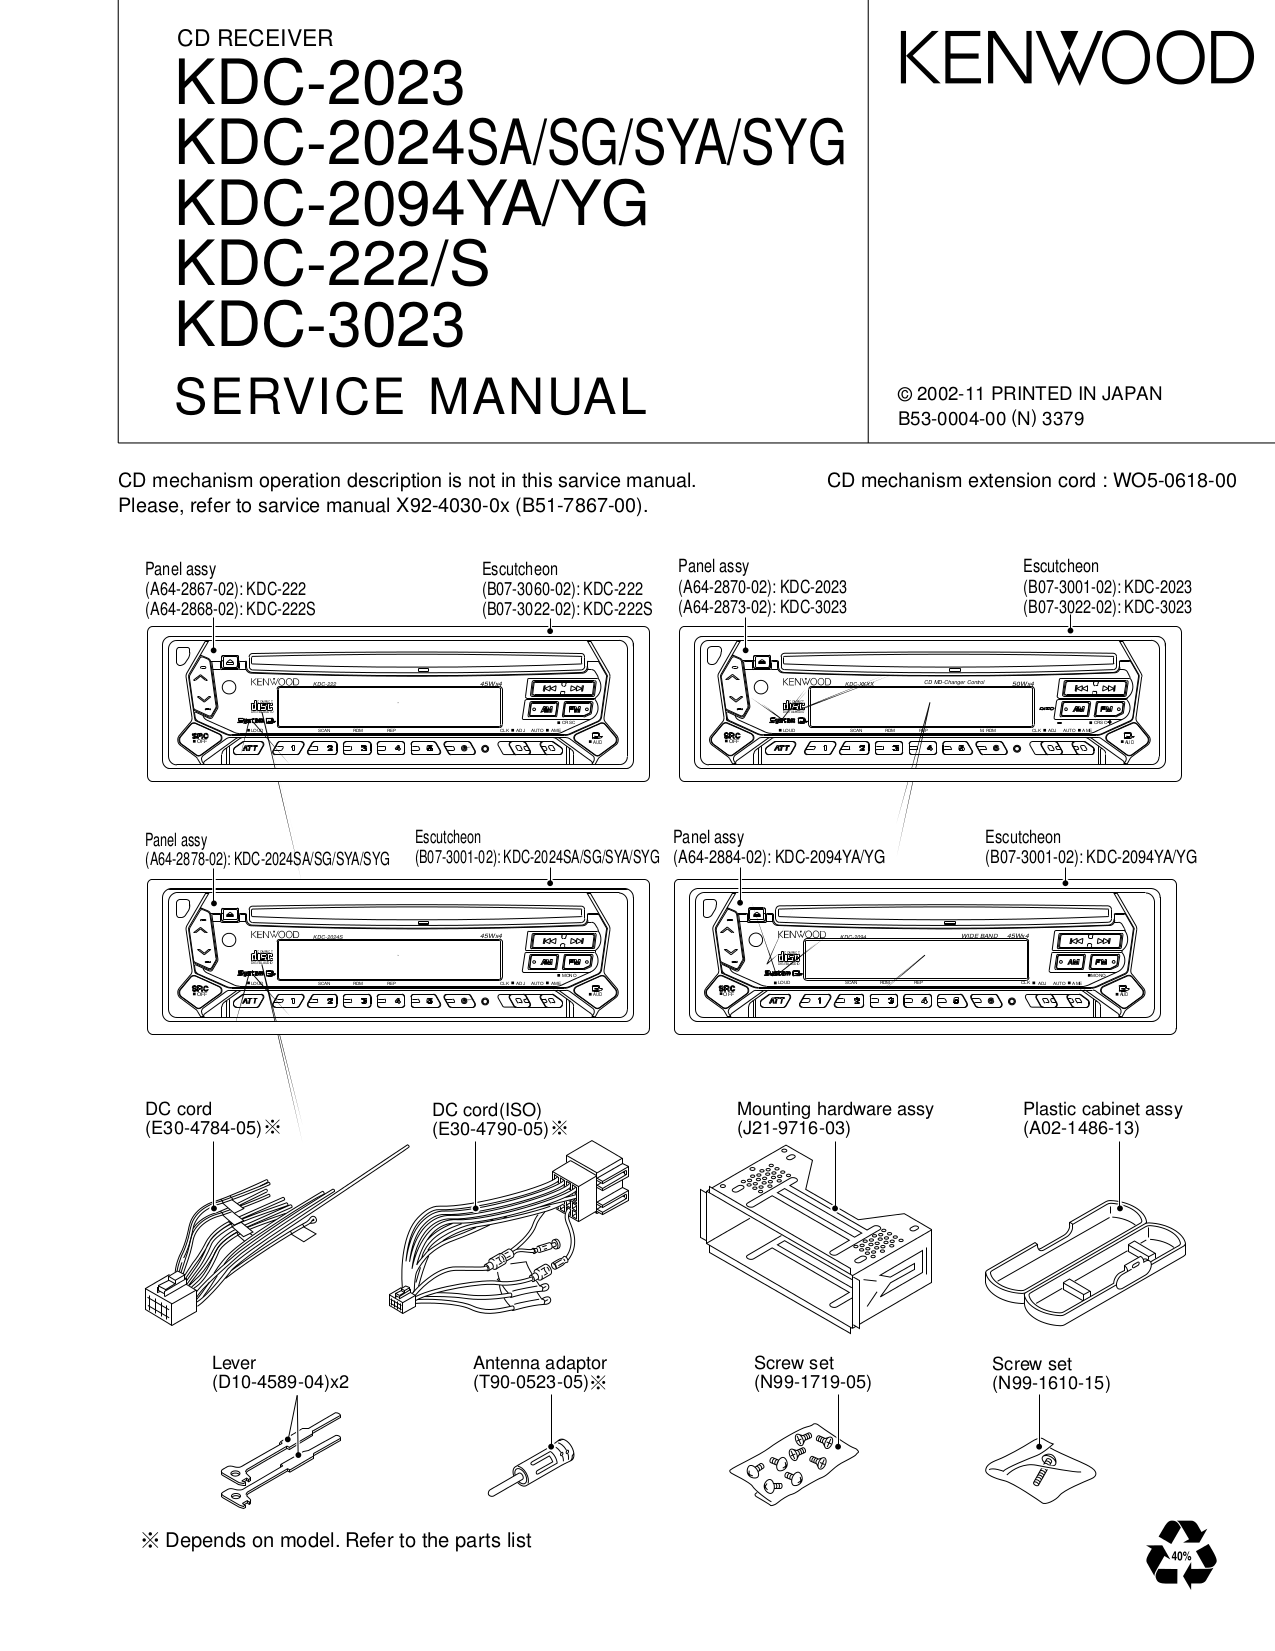 kdc2023 2024 2094 222 3023.pdf 0?resize=665%2C861 kenwood ddx470 wiring diagram best wiring diagram 2017 kenwood ddx471hd wiring diagram at eliteediting.co